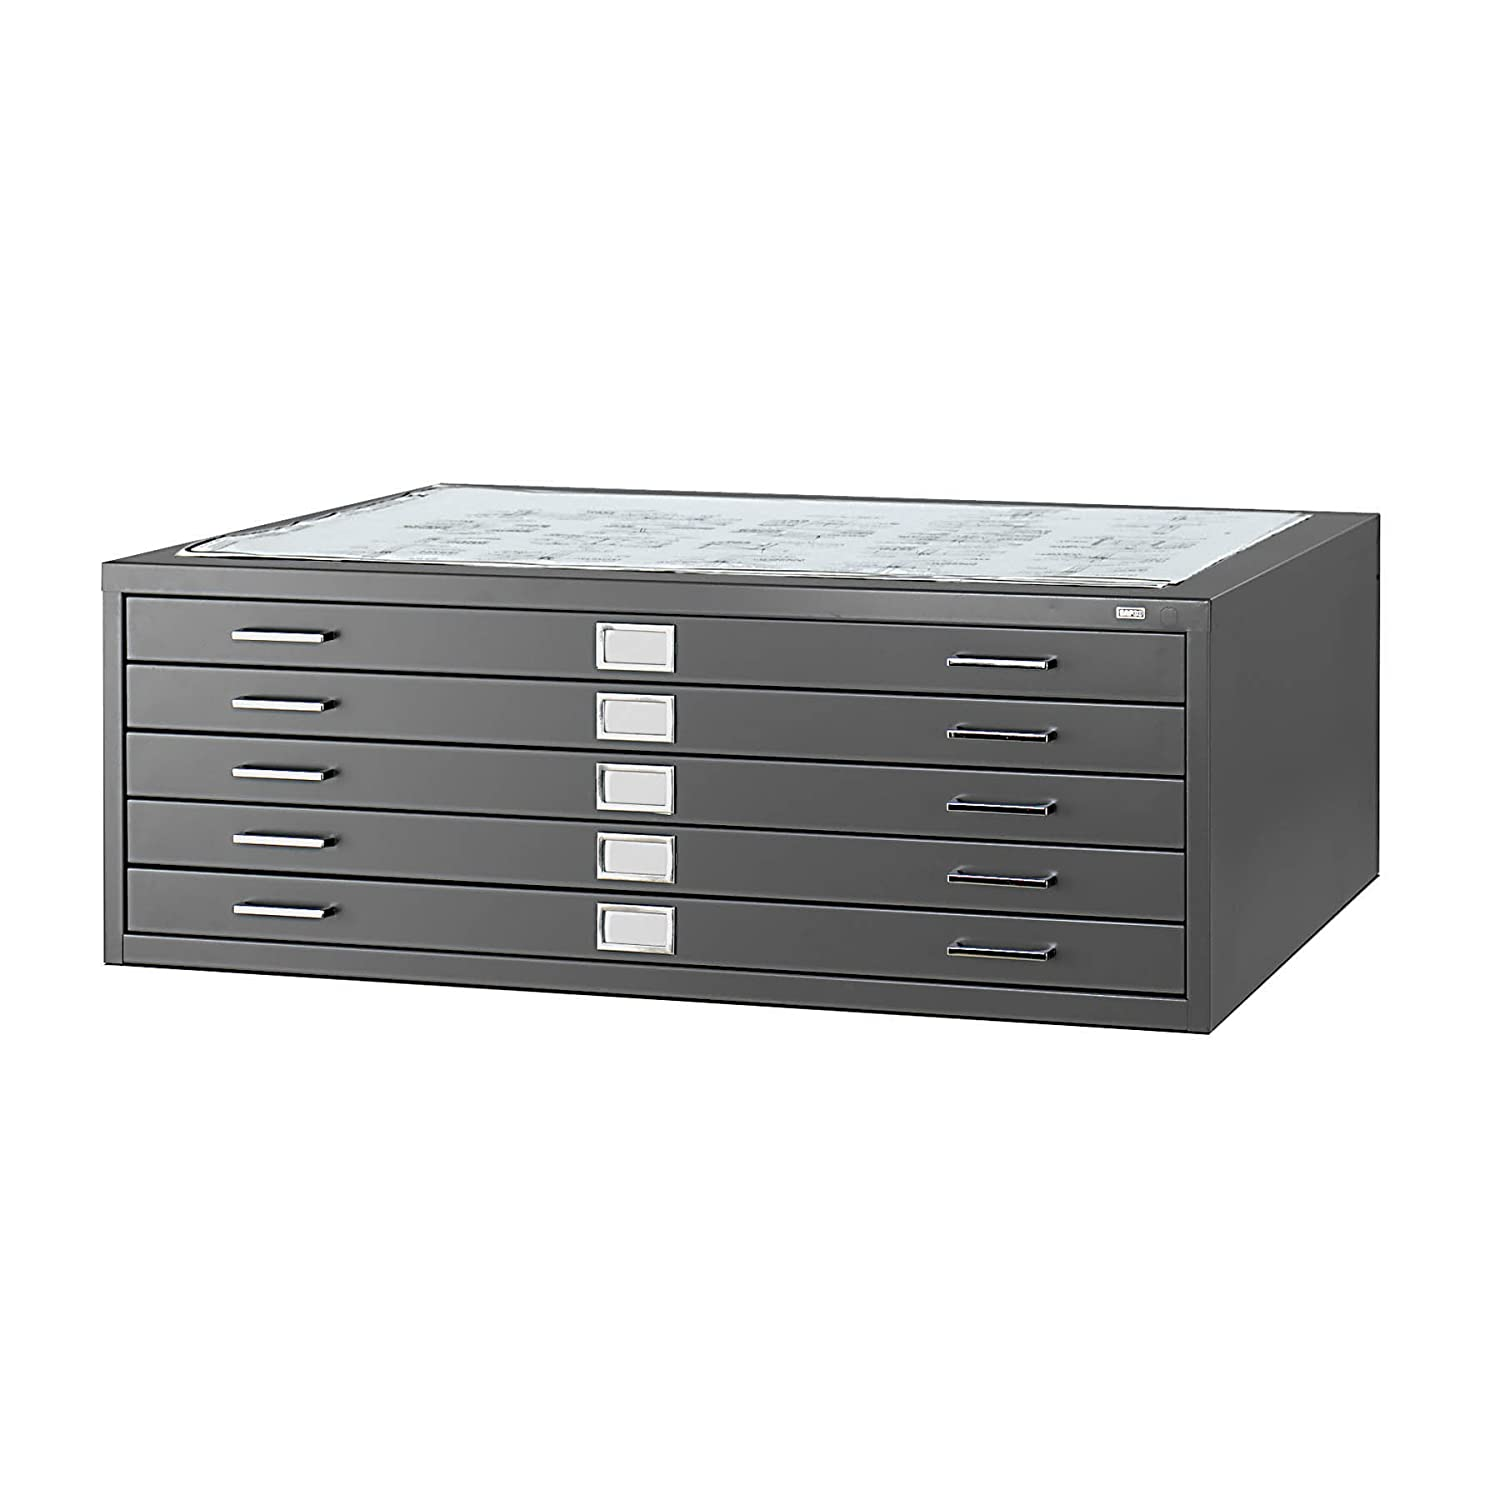 "Safco Products 4996BLR Flat File for 42"" W x 30"" D Documents 5 Drawer Additional options sold separately Black"